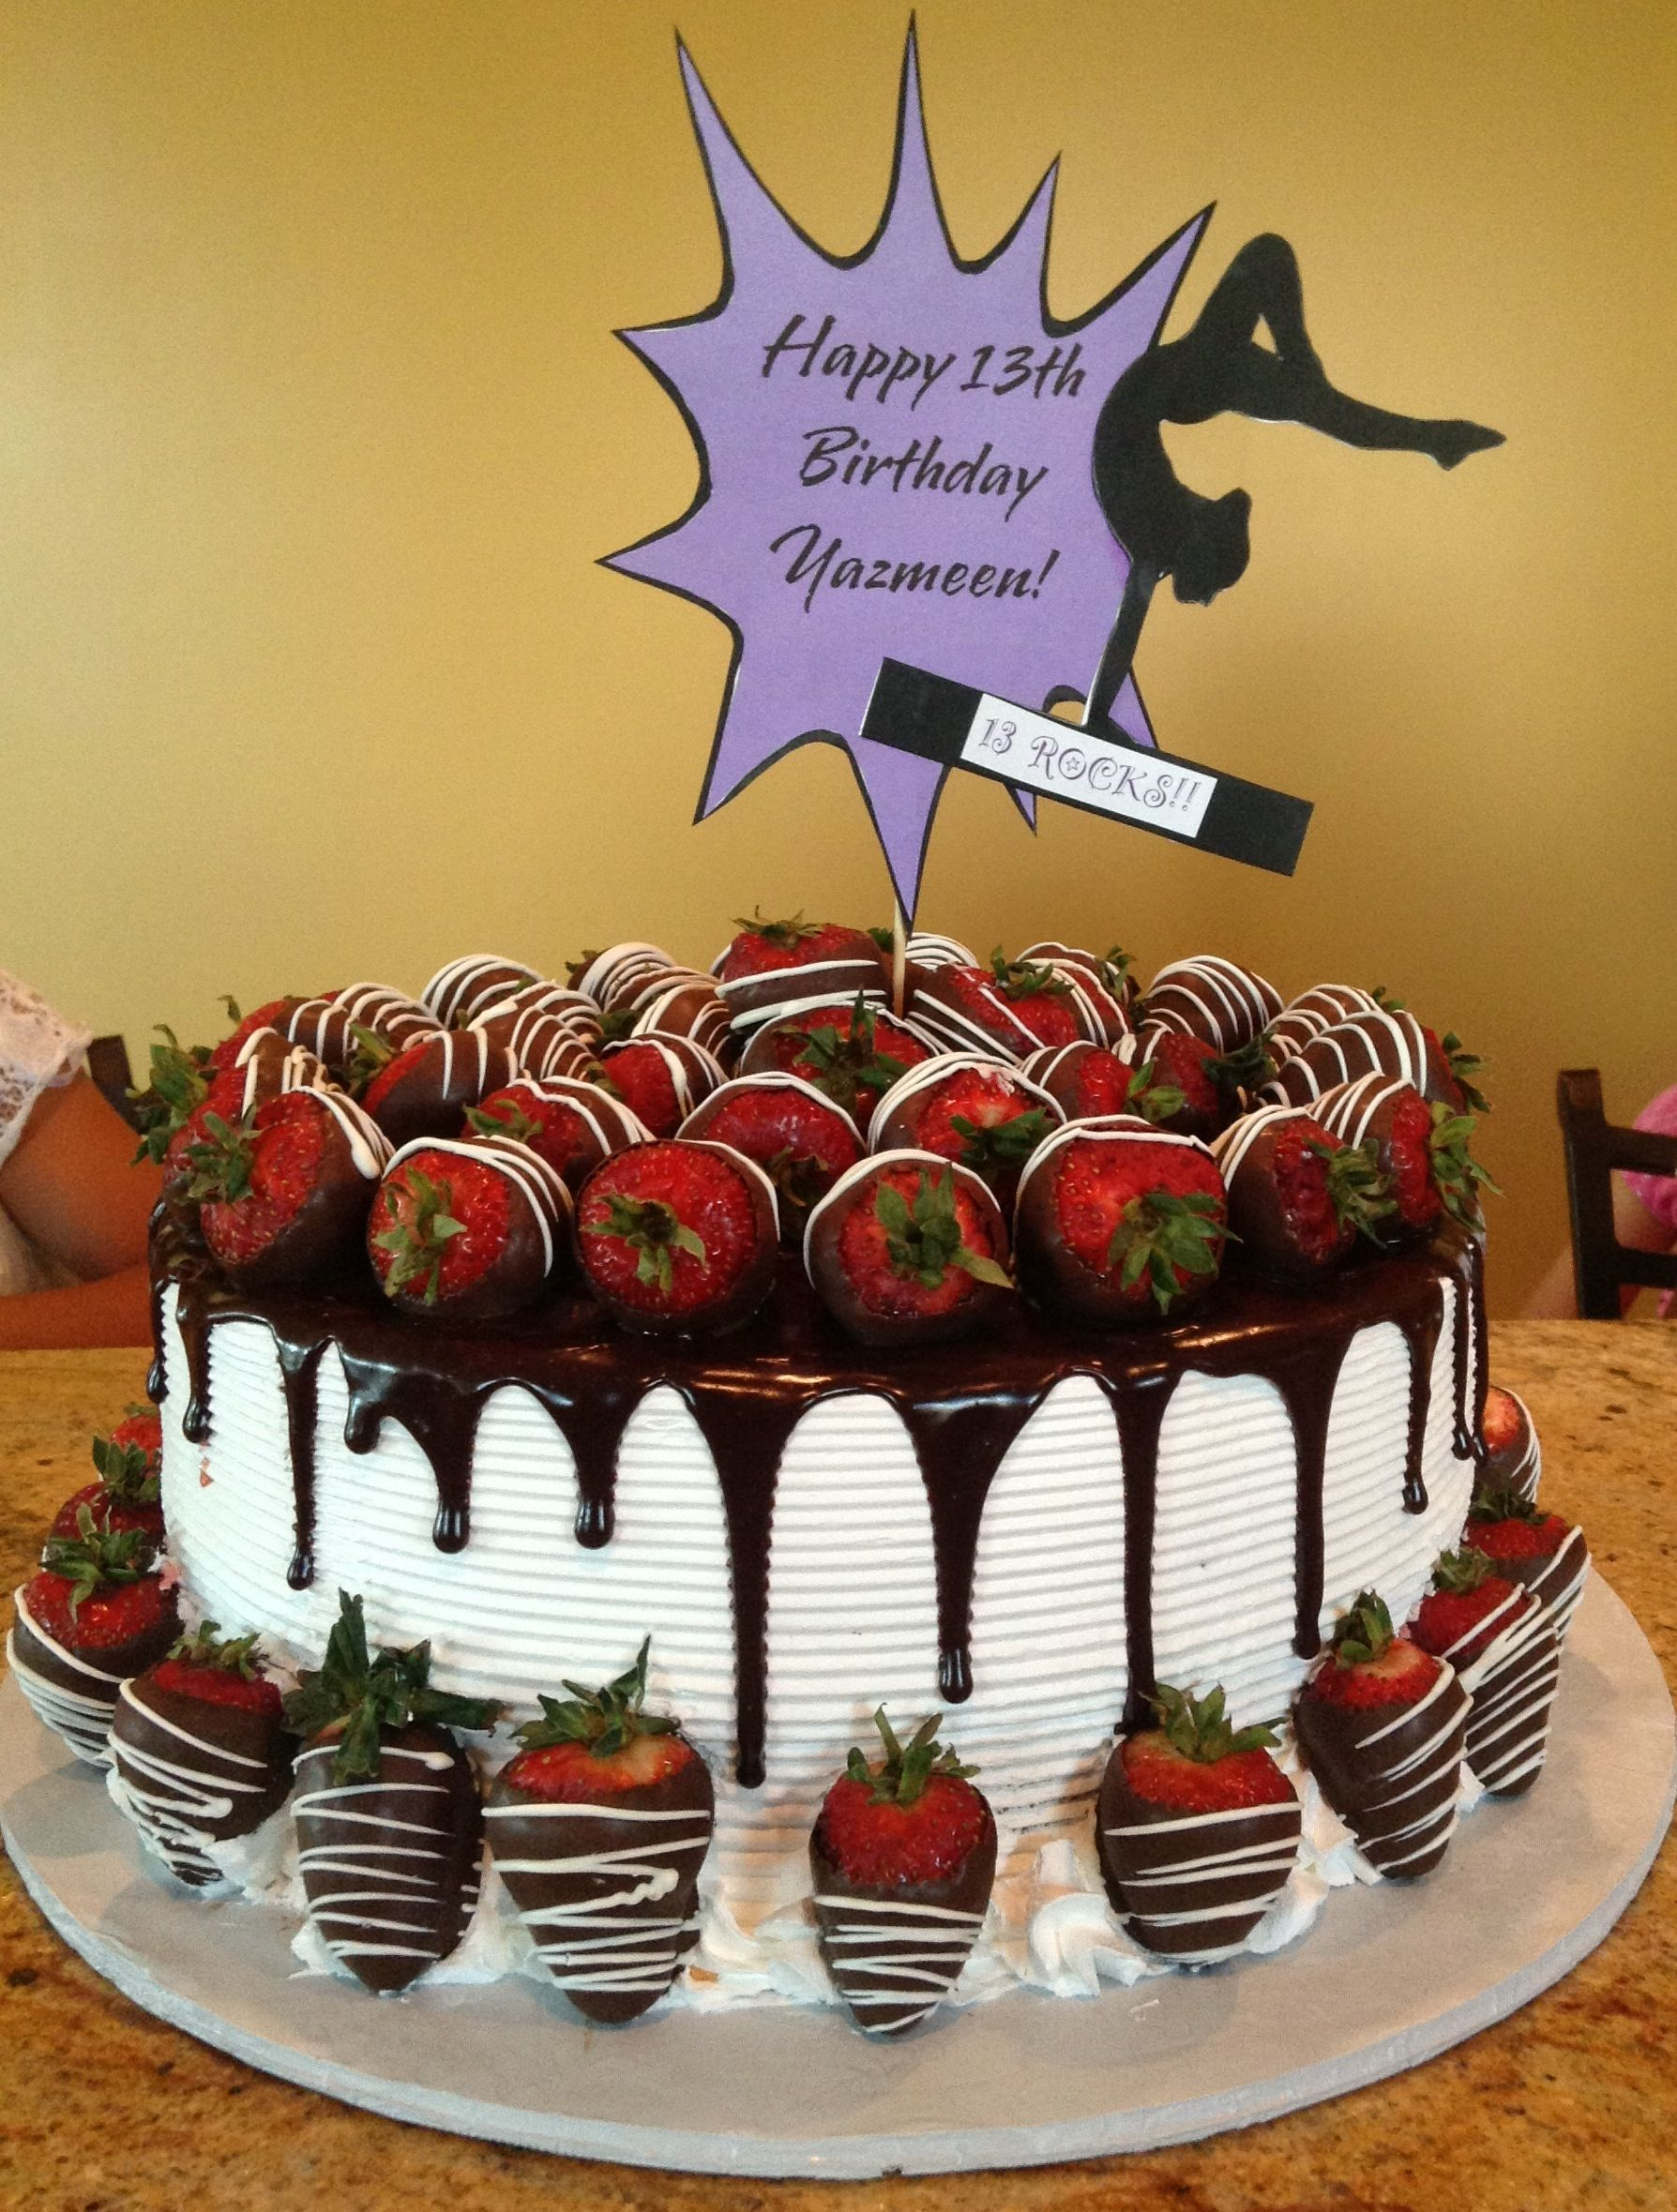 The Best Birthday Cake Ever Chocolate Covered Strawberry